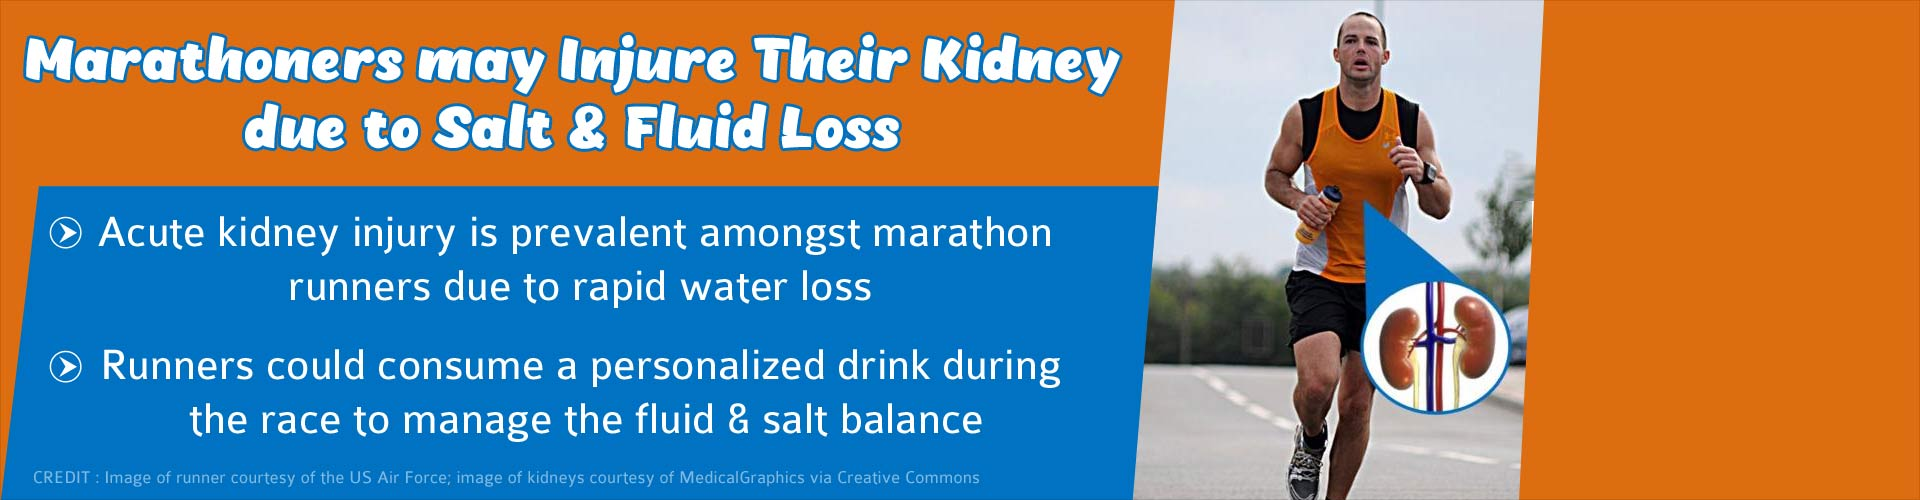 Kidney Injury Due to Salt and Fluid Loss in Marathoners Is Quite Common